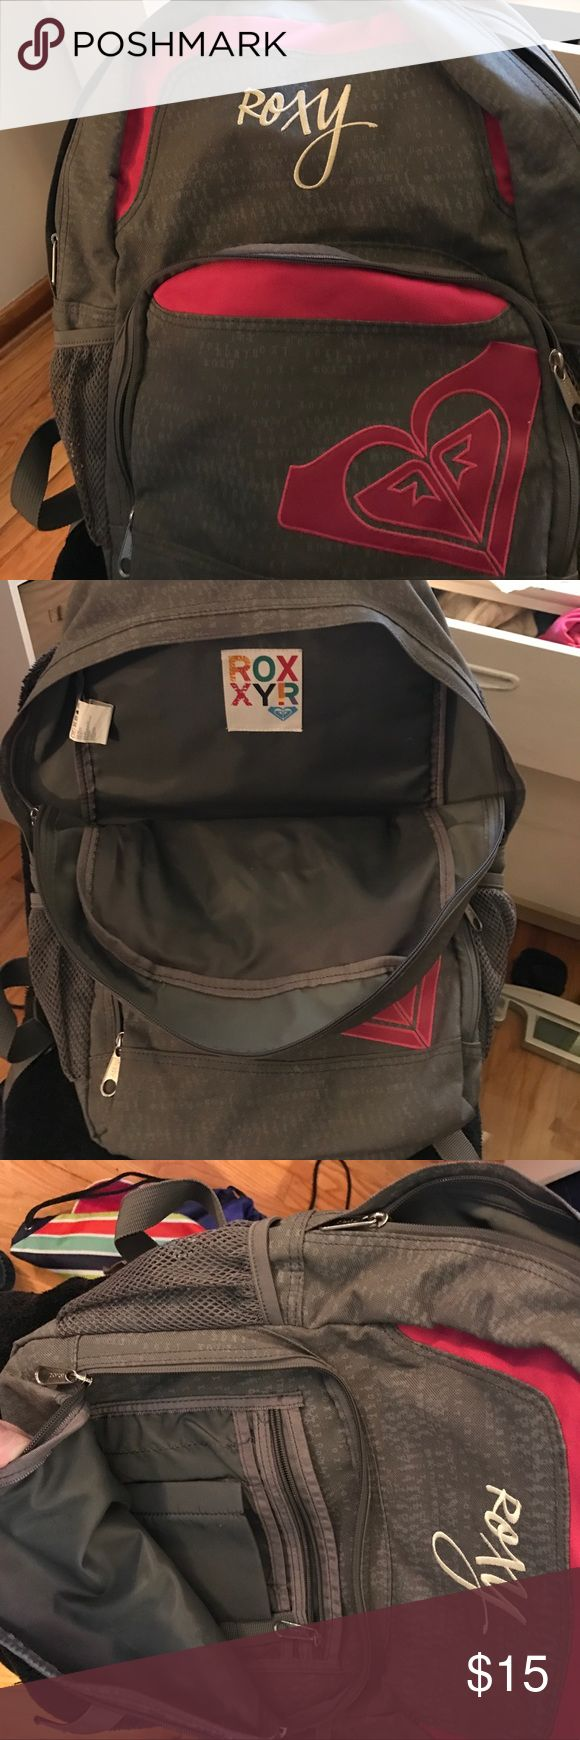 Roxy back pack Pink and gray roxy backpack Roxy Bags